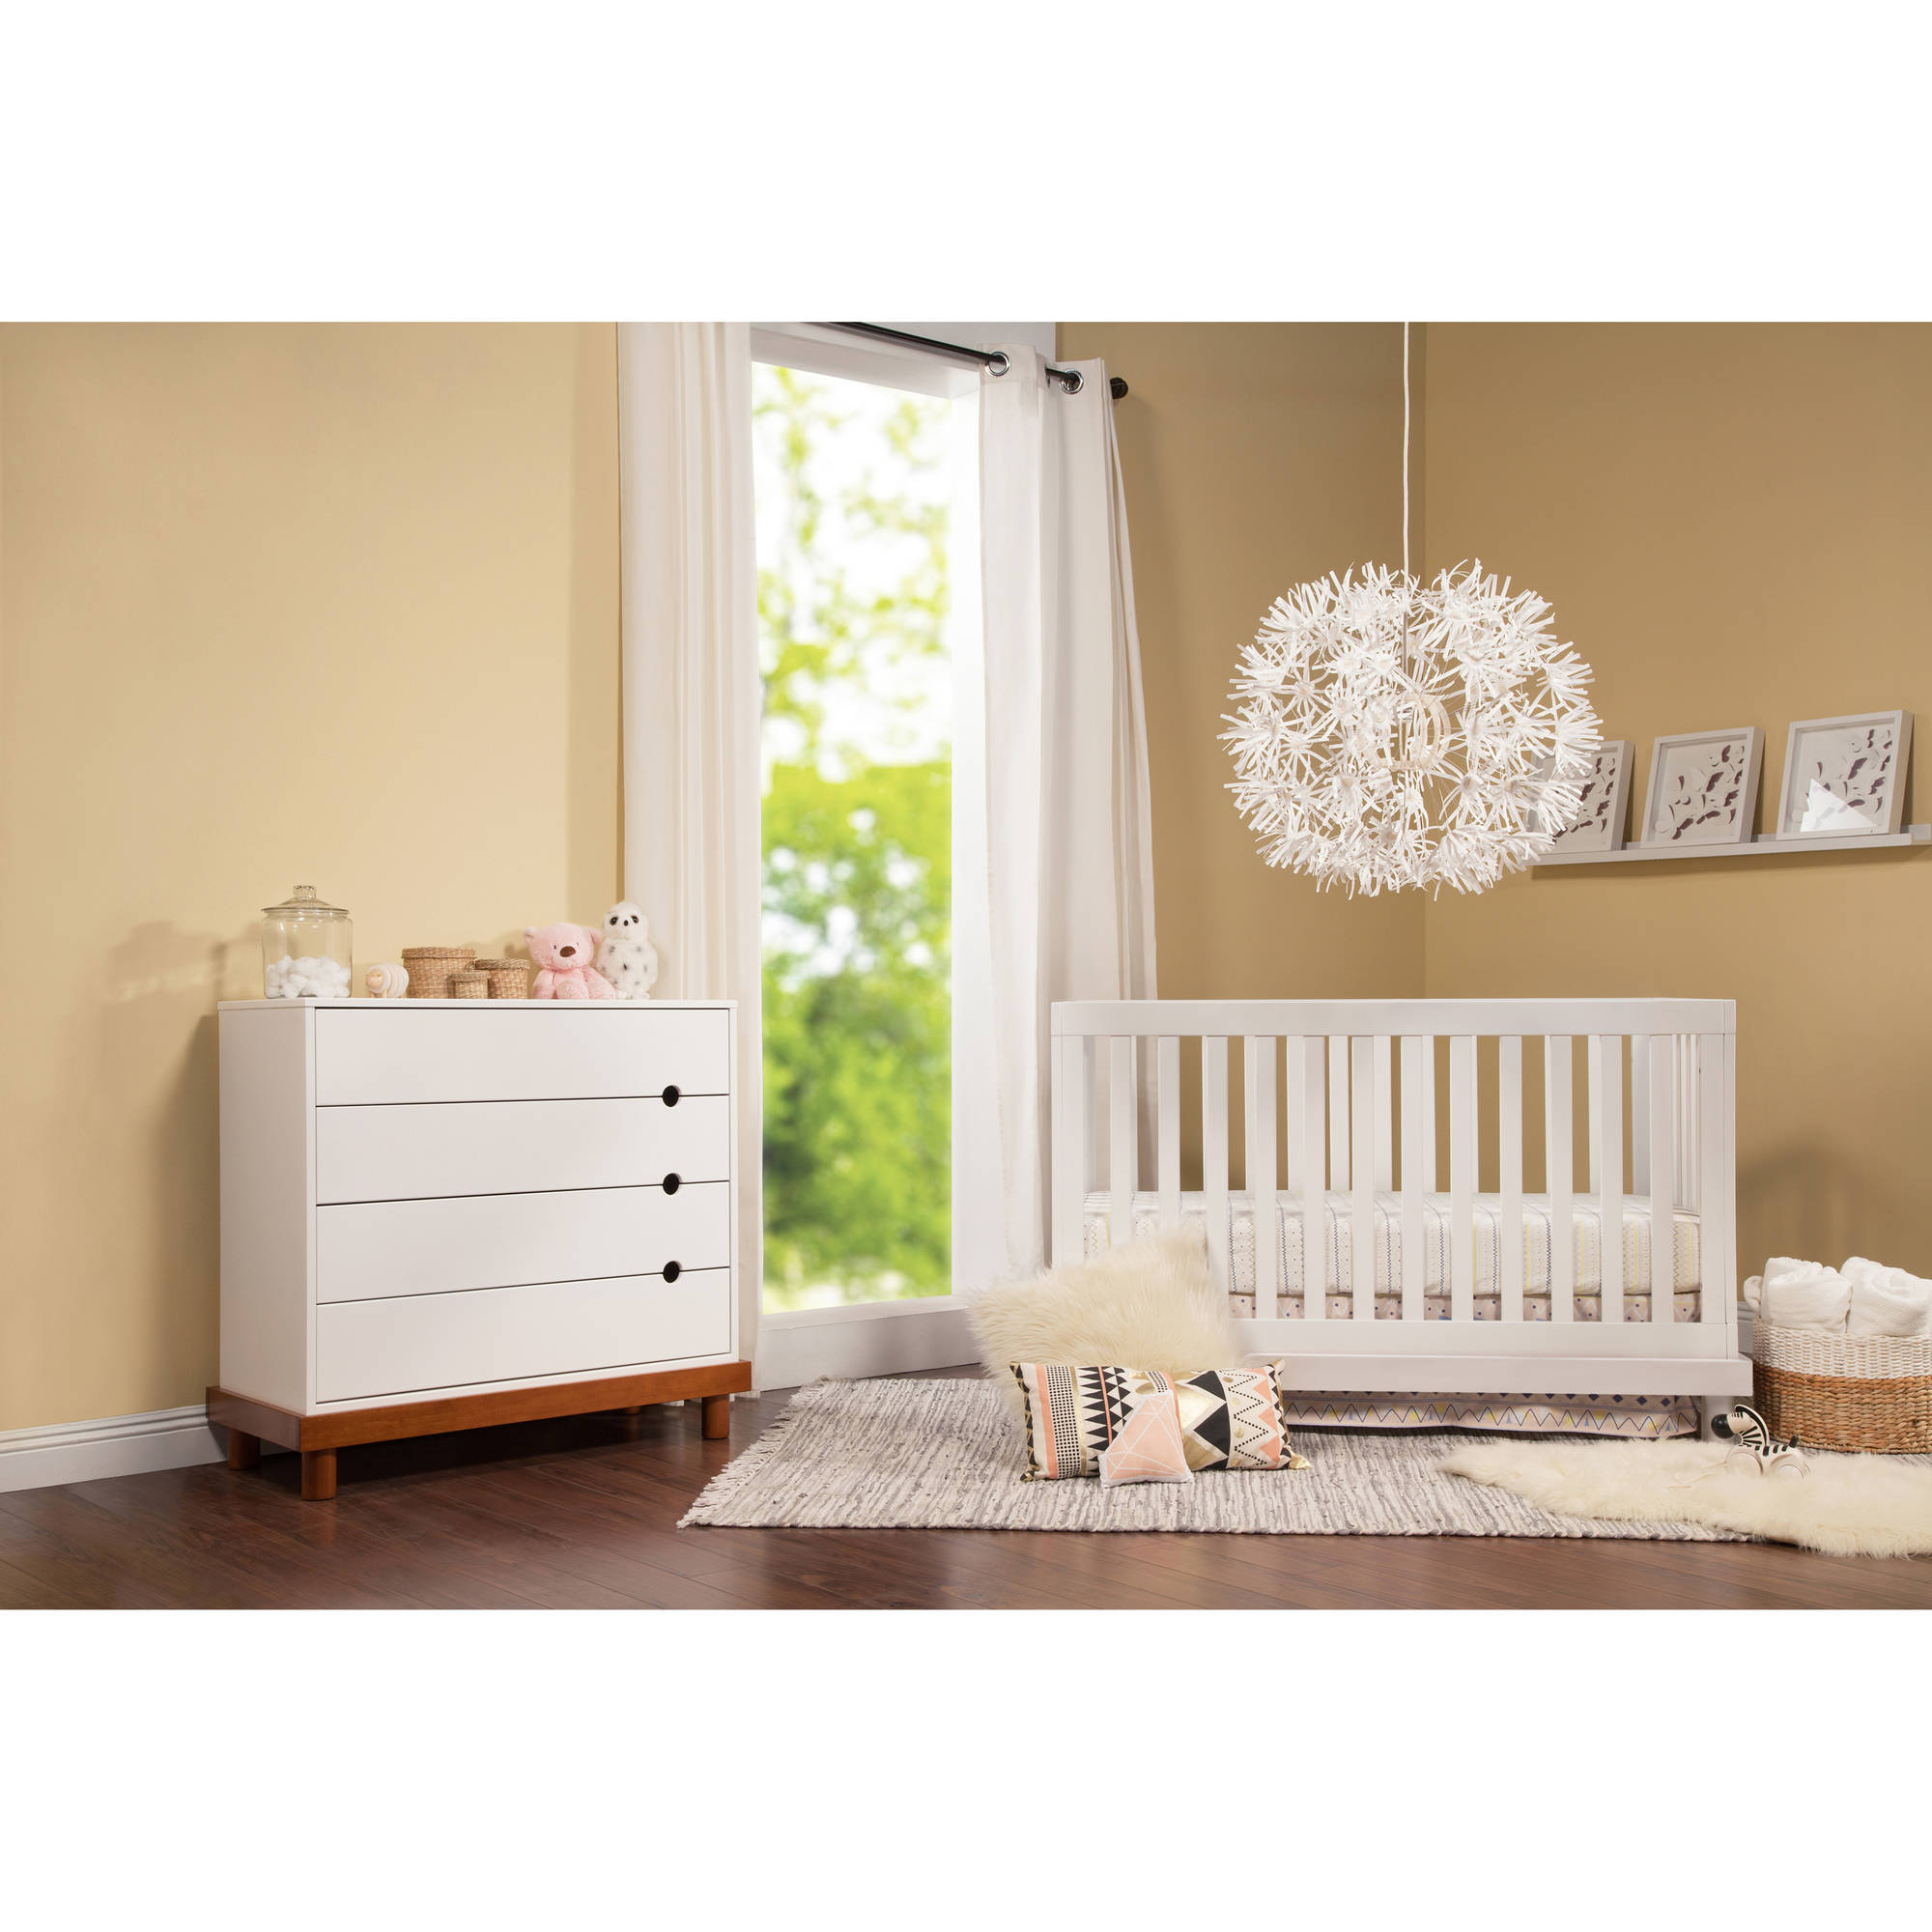 Baby cribs regulations canada - Baby Cribs Regulations Canada 13